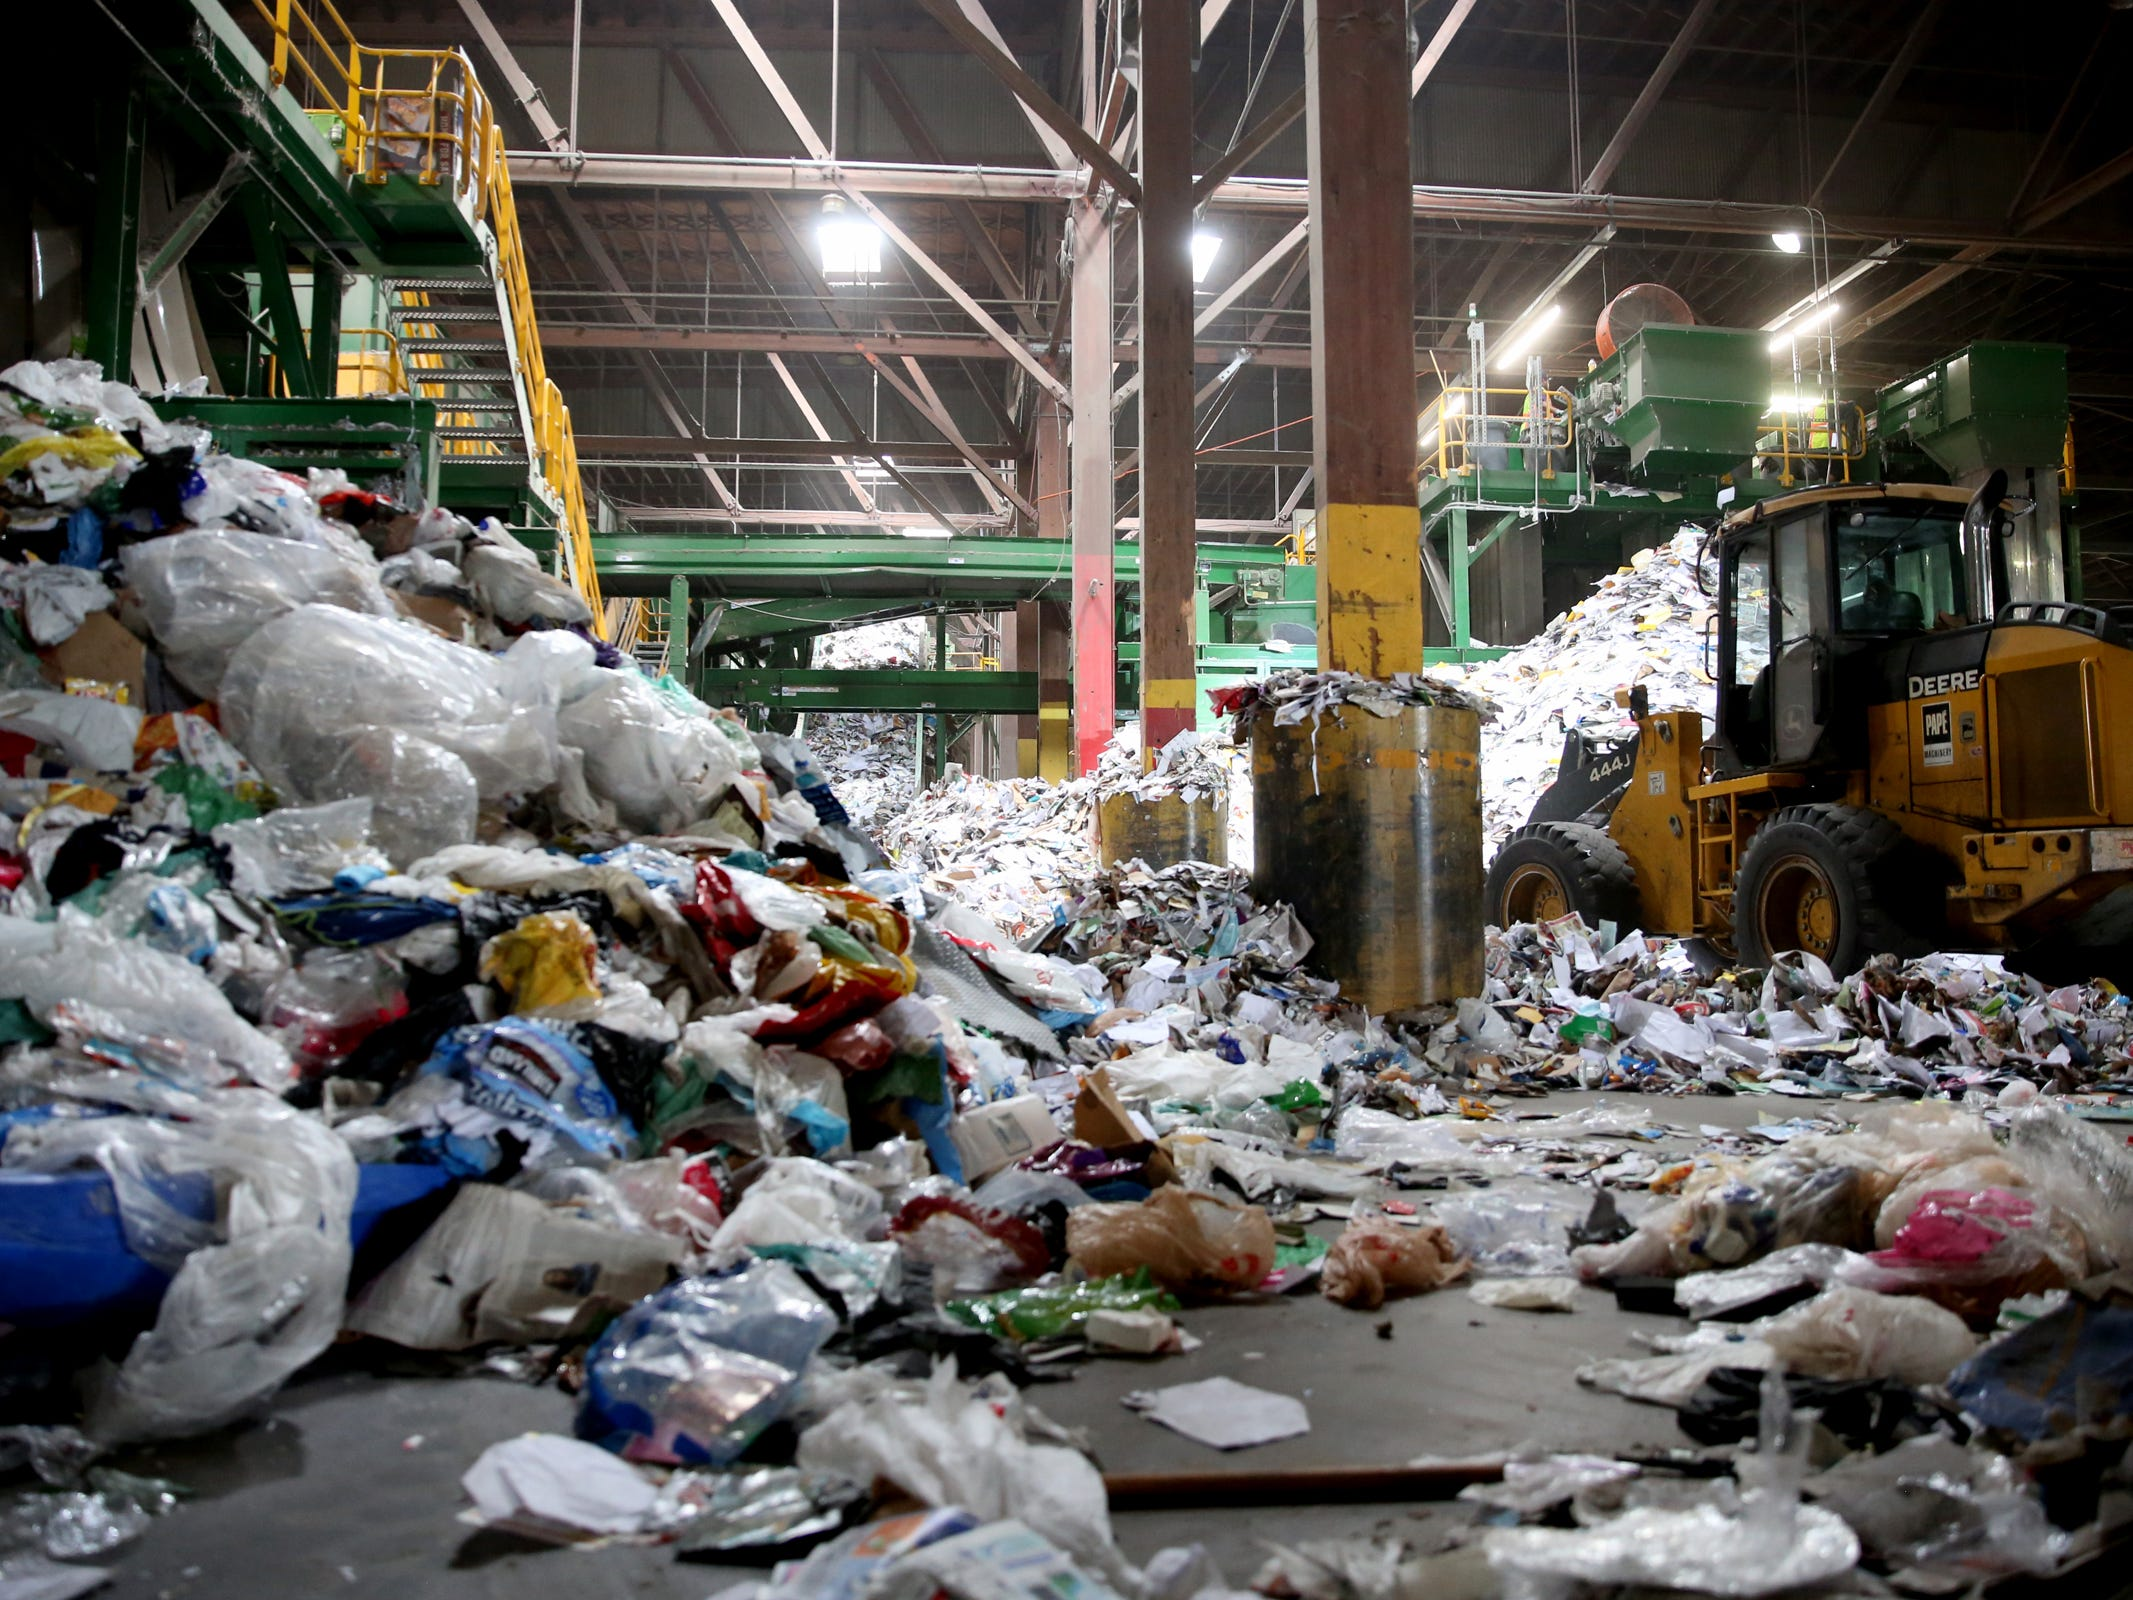 Trash that cannot be recycled or sold, like plastic bags, piles up at Garten Recycling in Salem on Friday, Aug. 3, 2018.